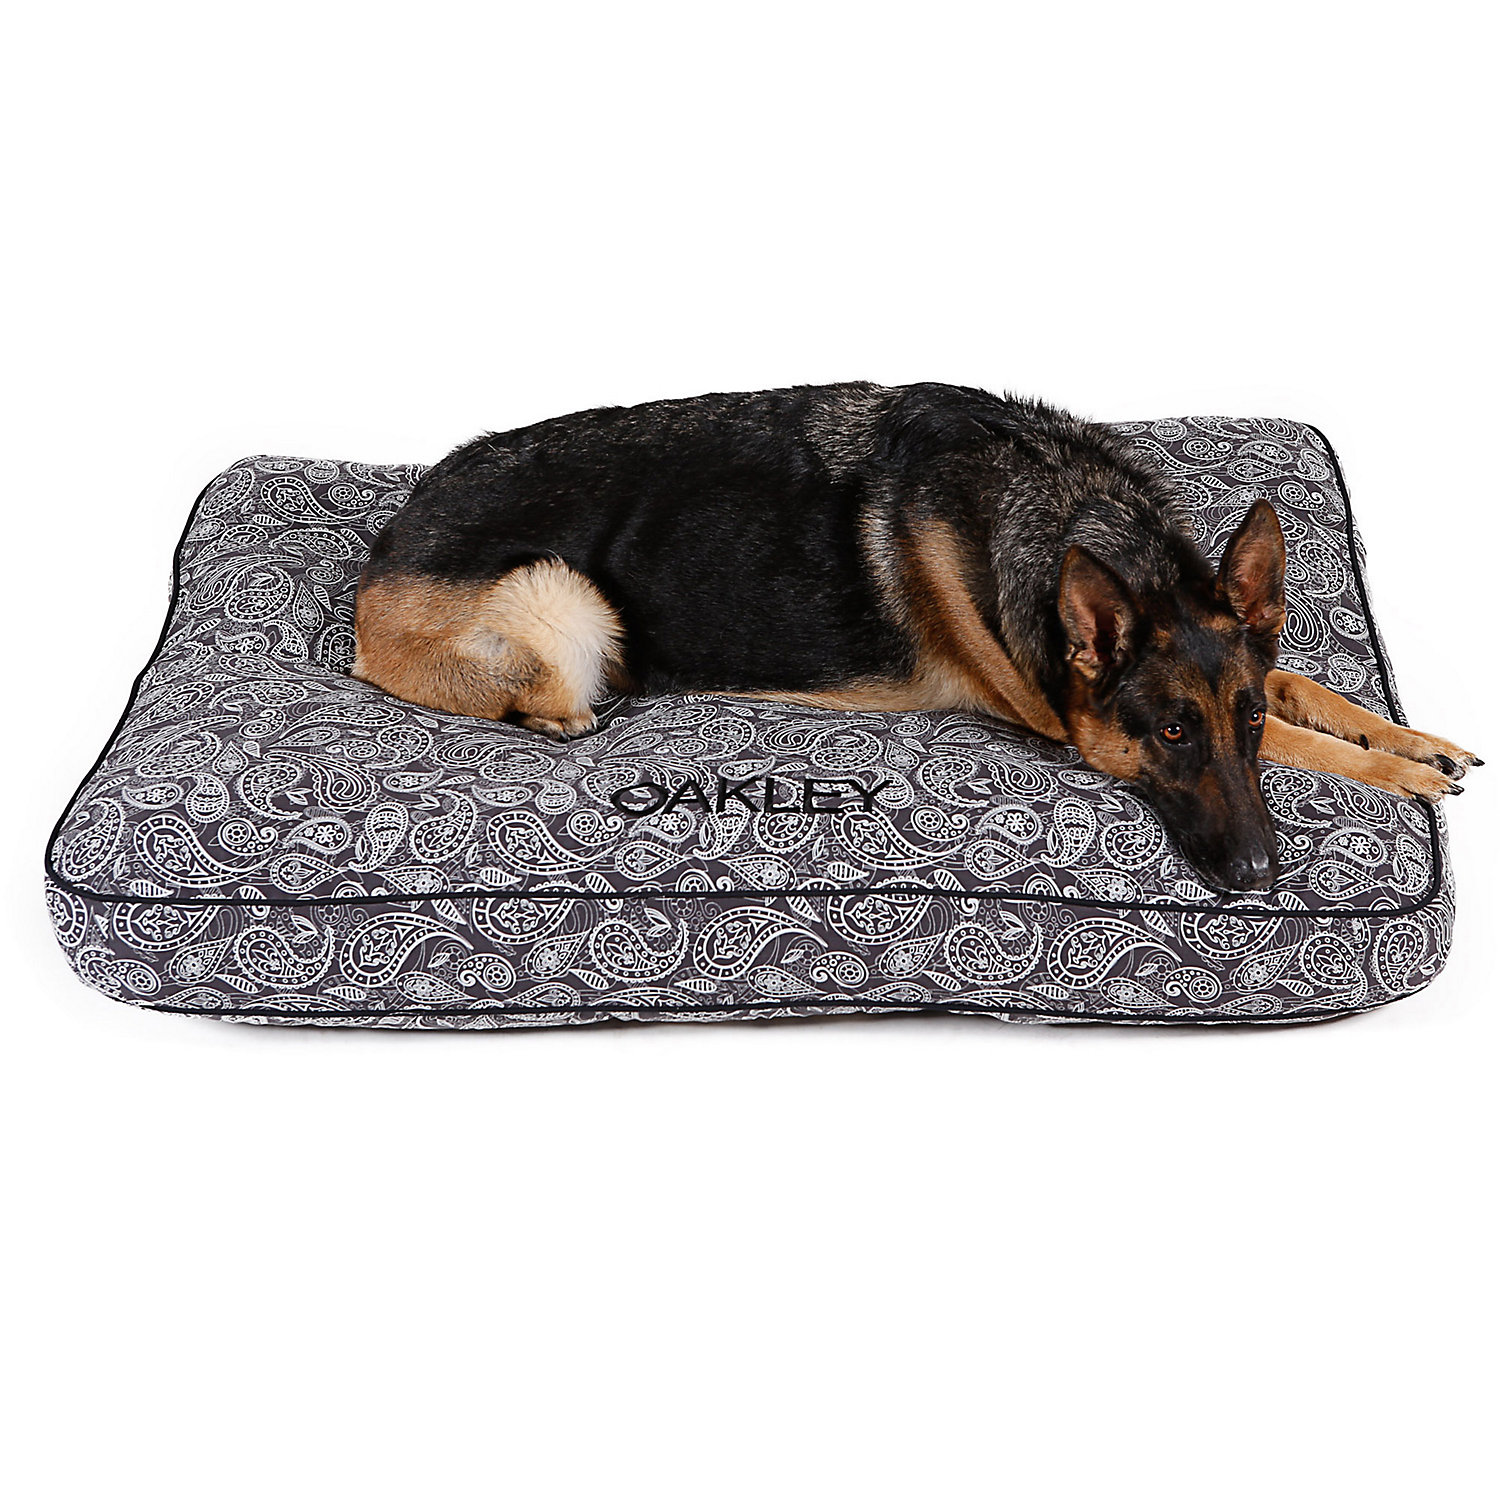 Doctors Foster  Smith Personalized Ultimate Classic Gray Paisley Dog Beds